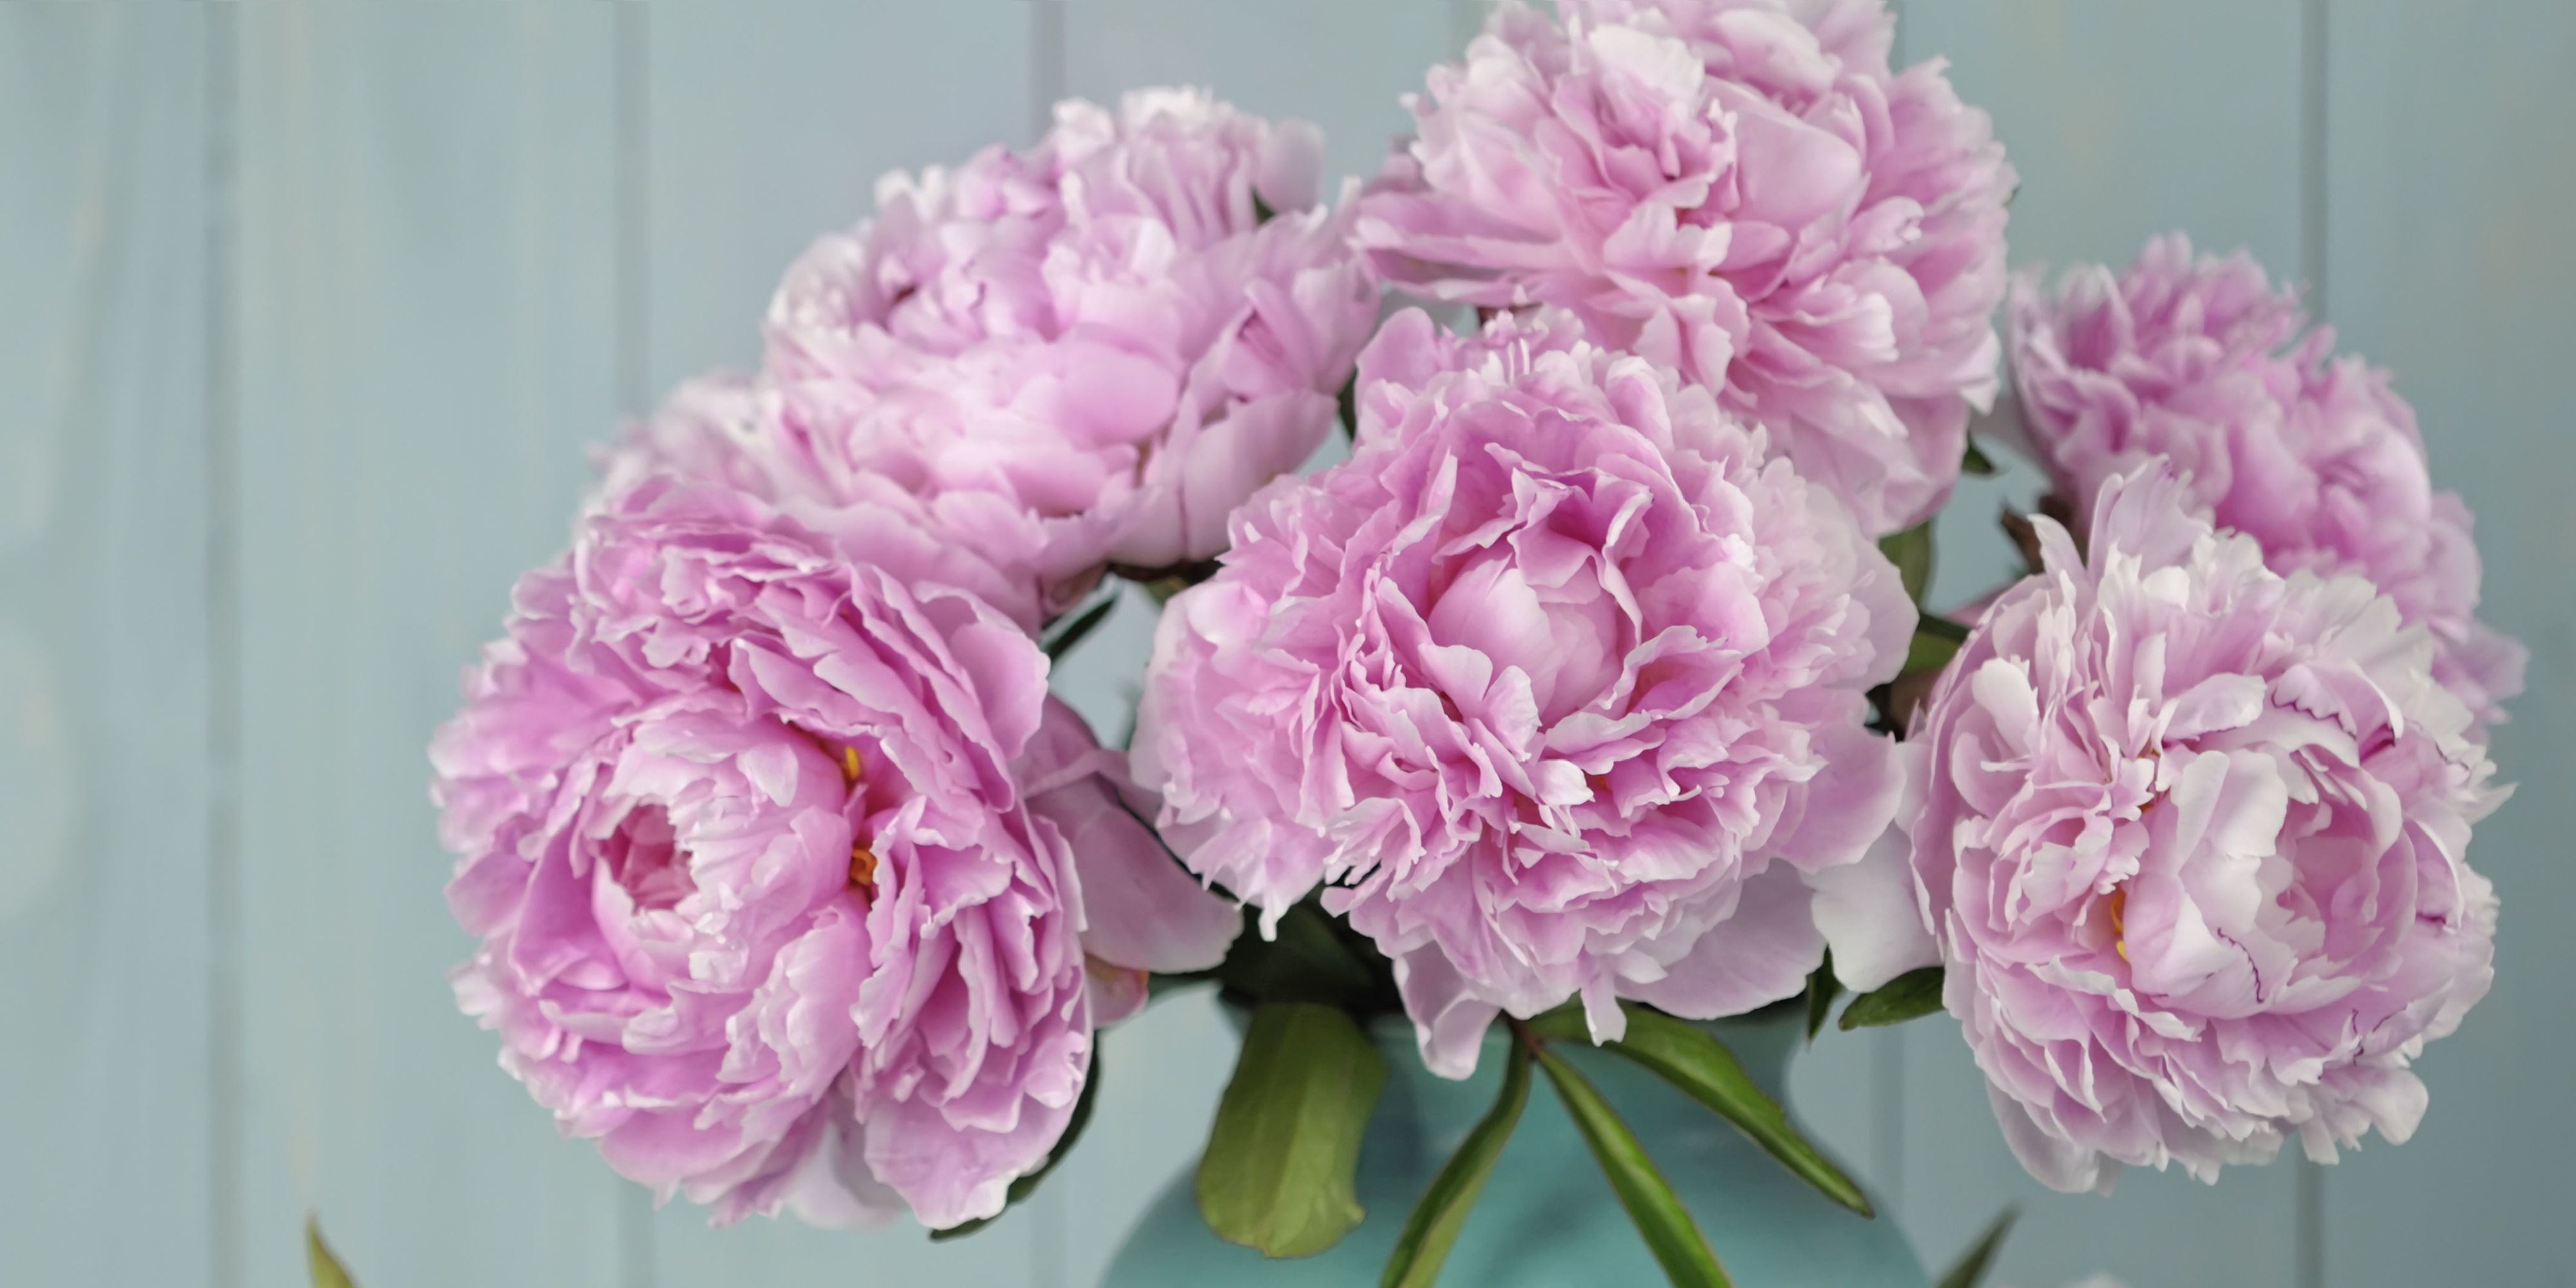 9 Tips for Growing the Perfect Peonies